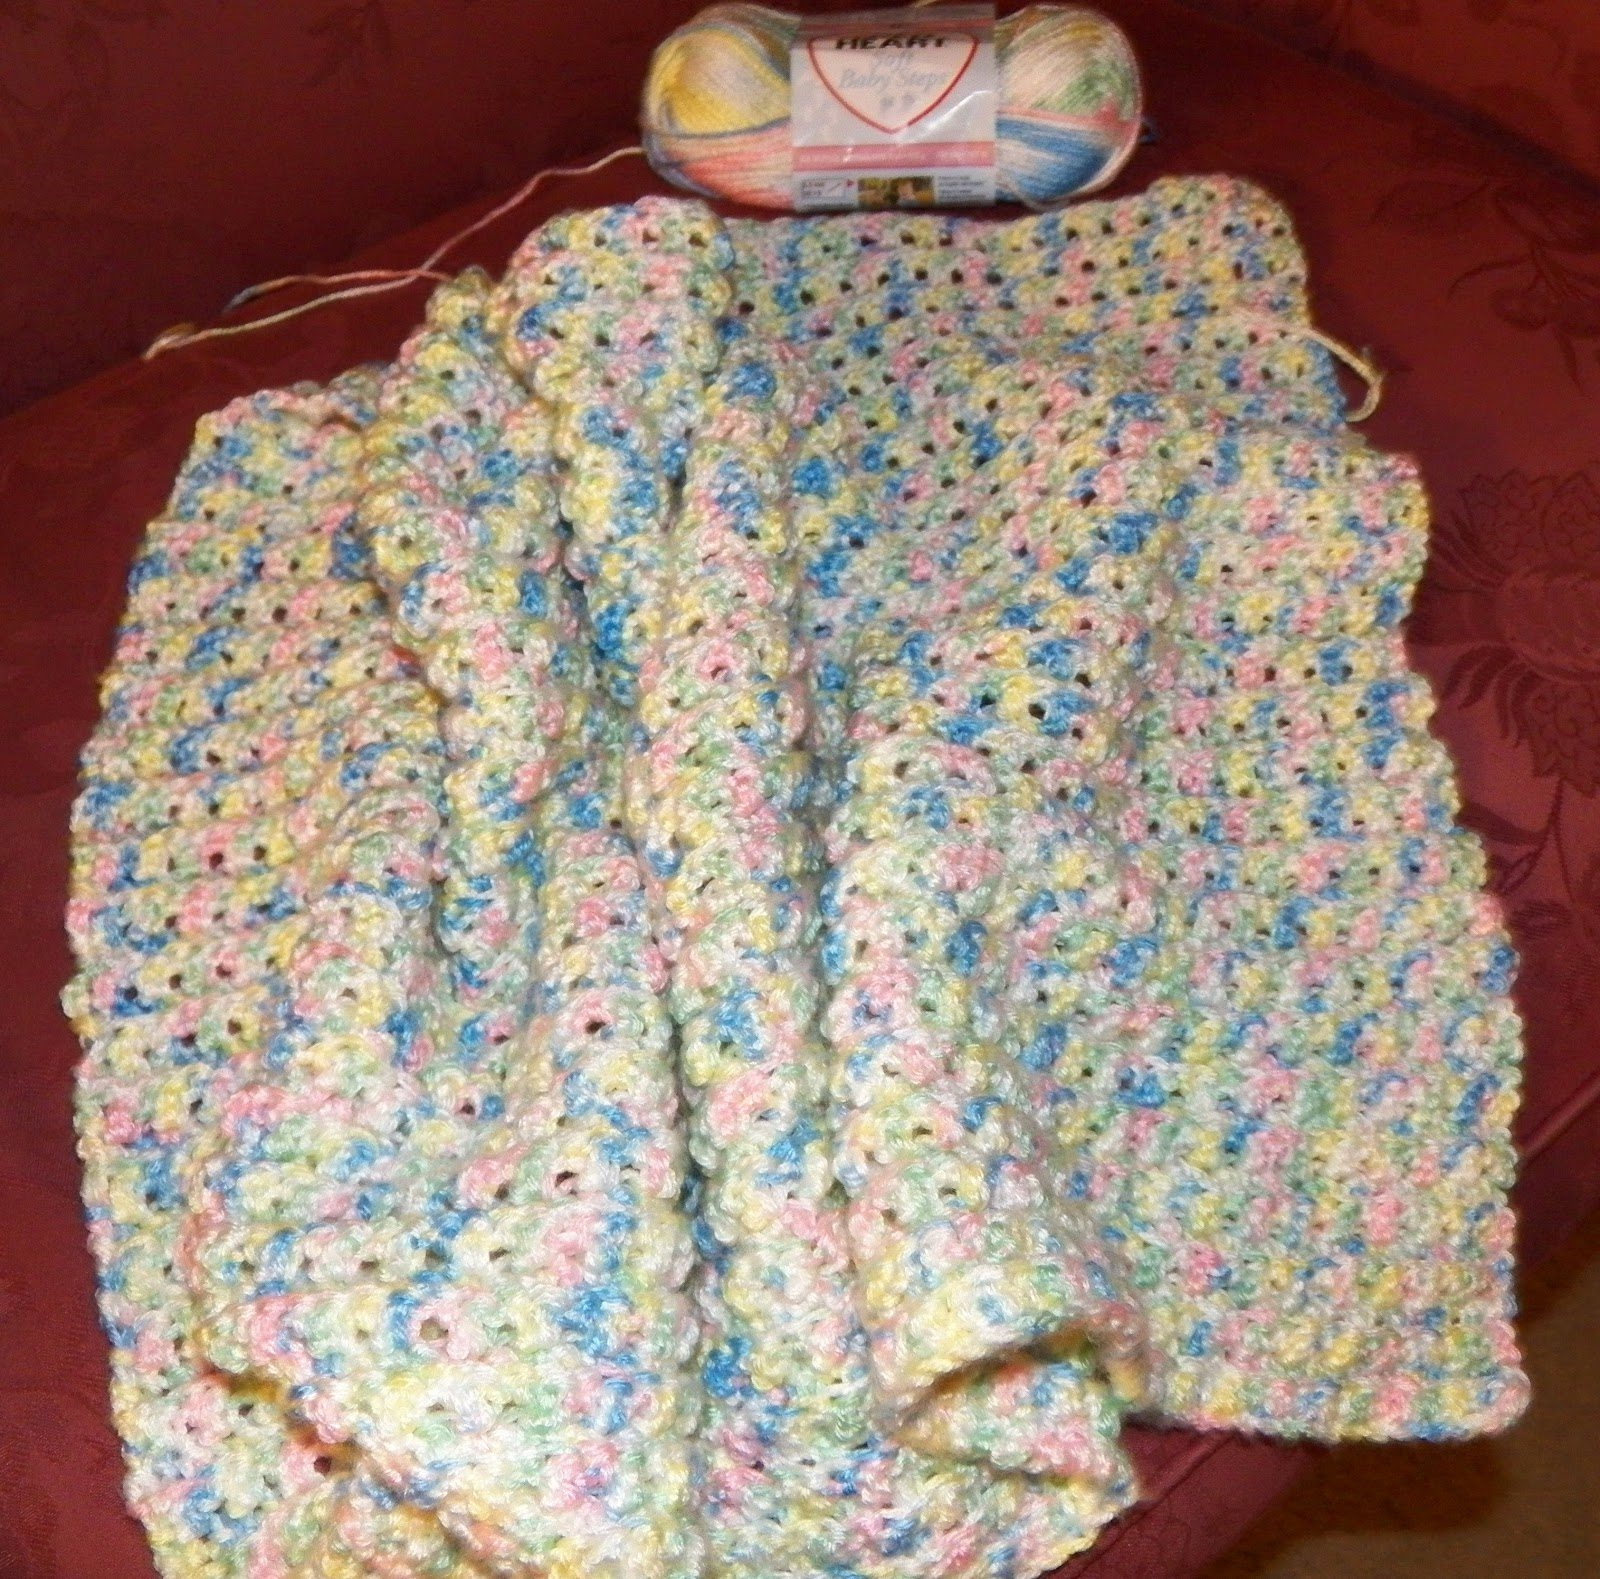 Crochet Attic: Baby Blanket in Progress...